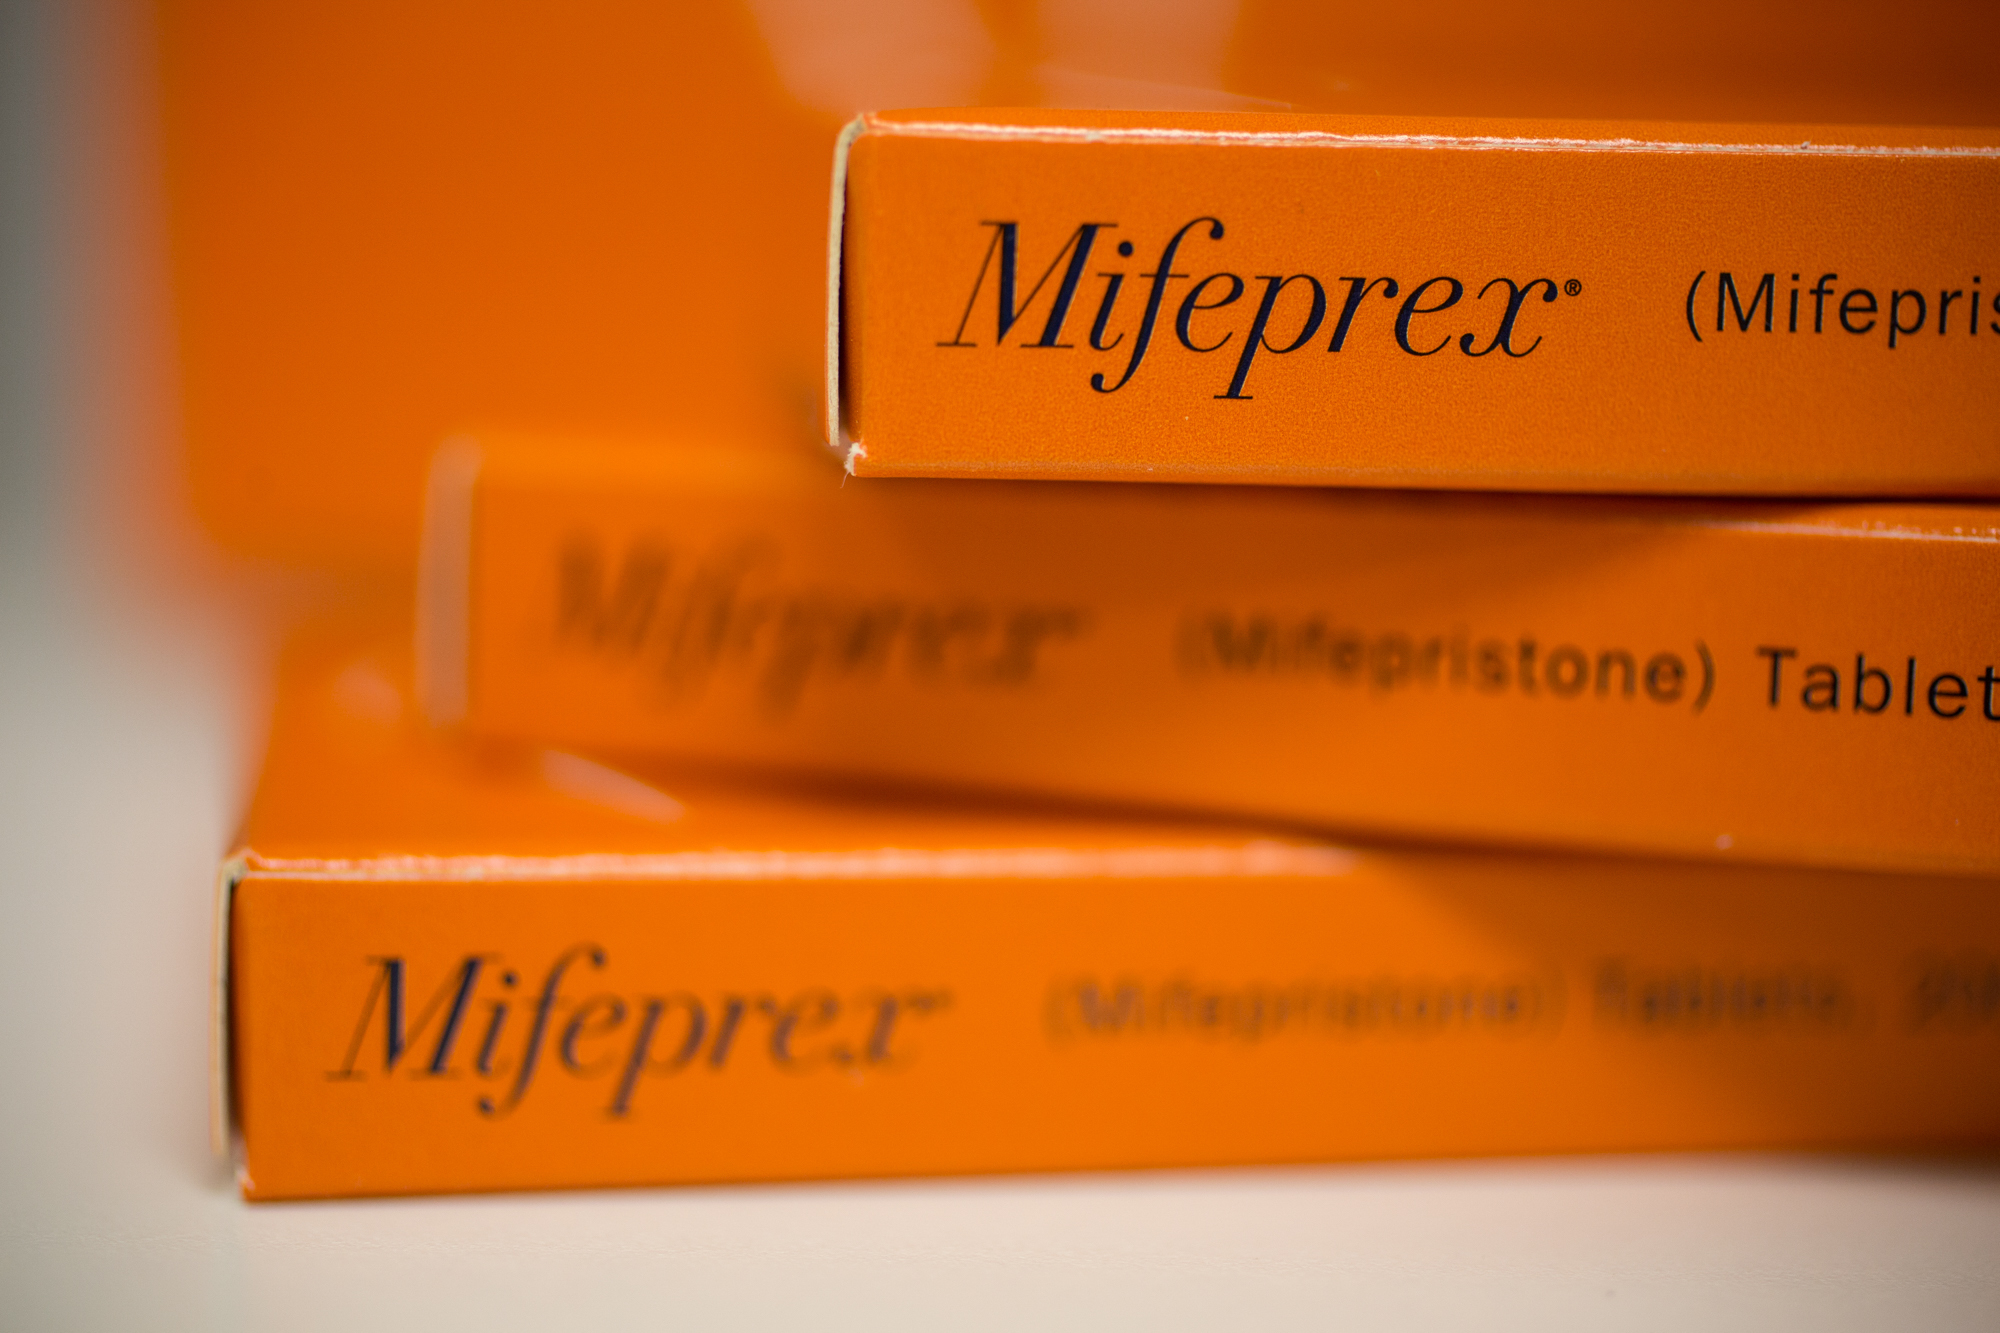 Mifepristone, sold under the brand name Mifeprex, causes a woman to have what's essentially a very heavy period.